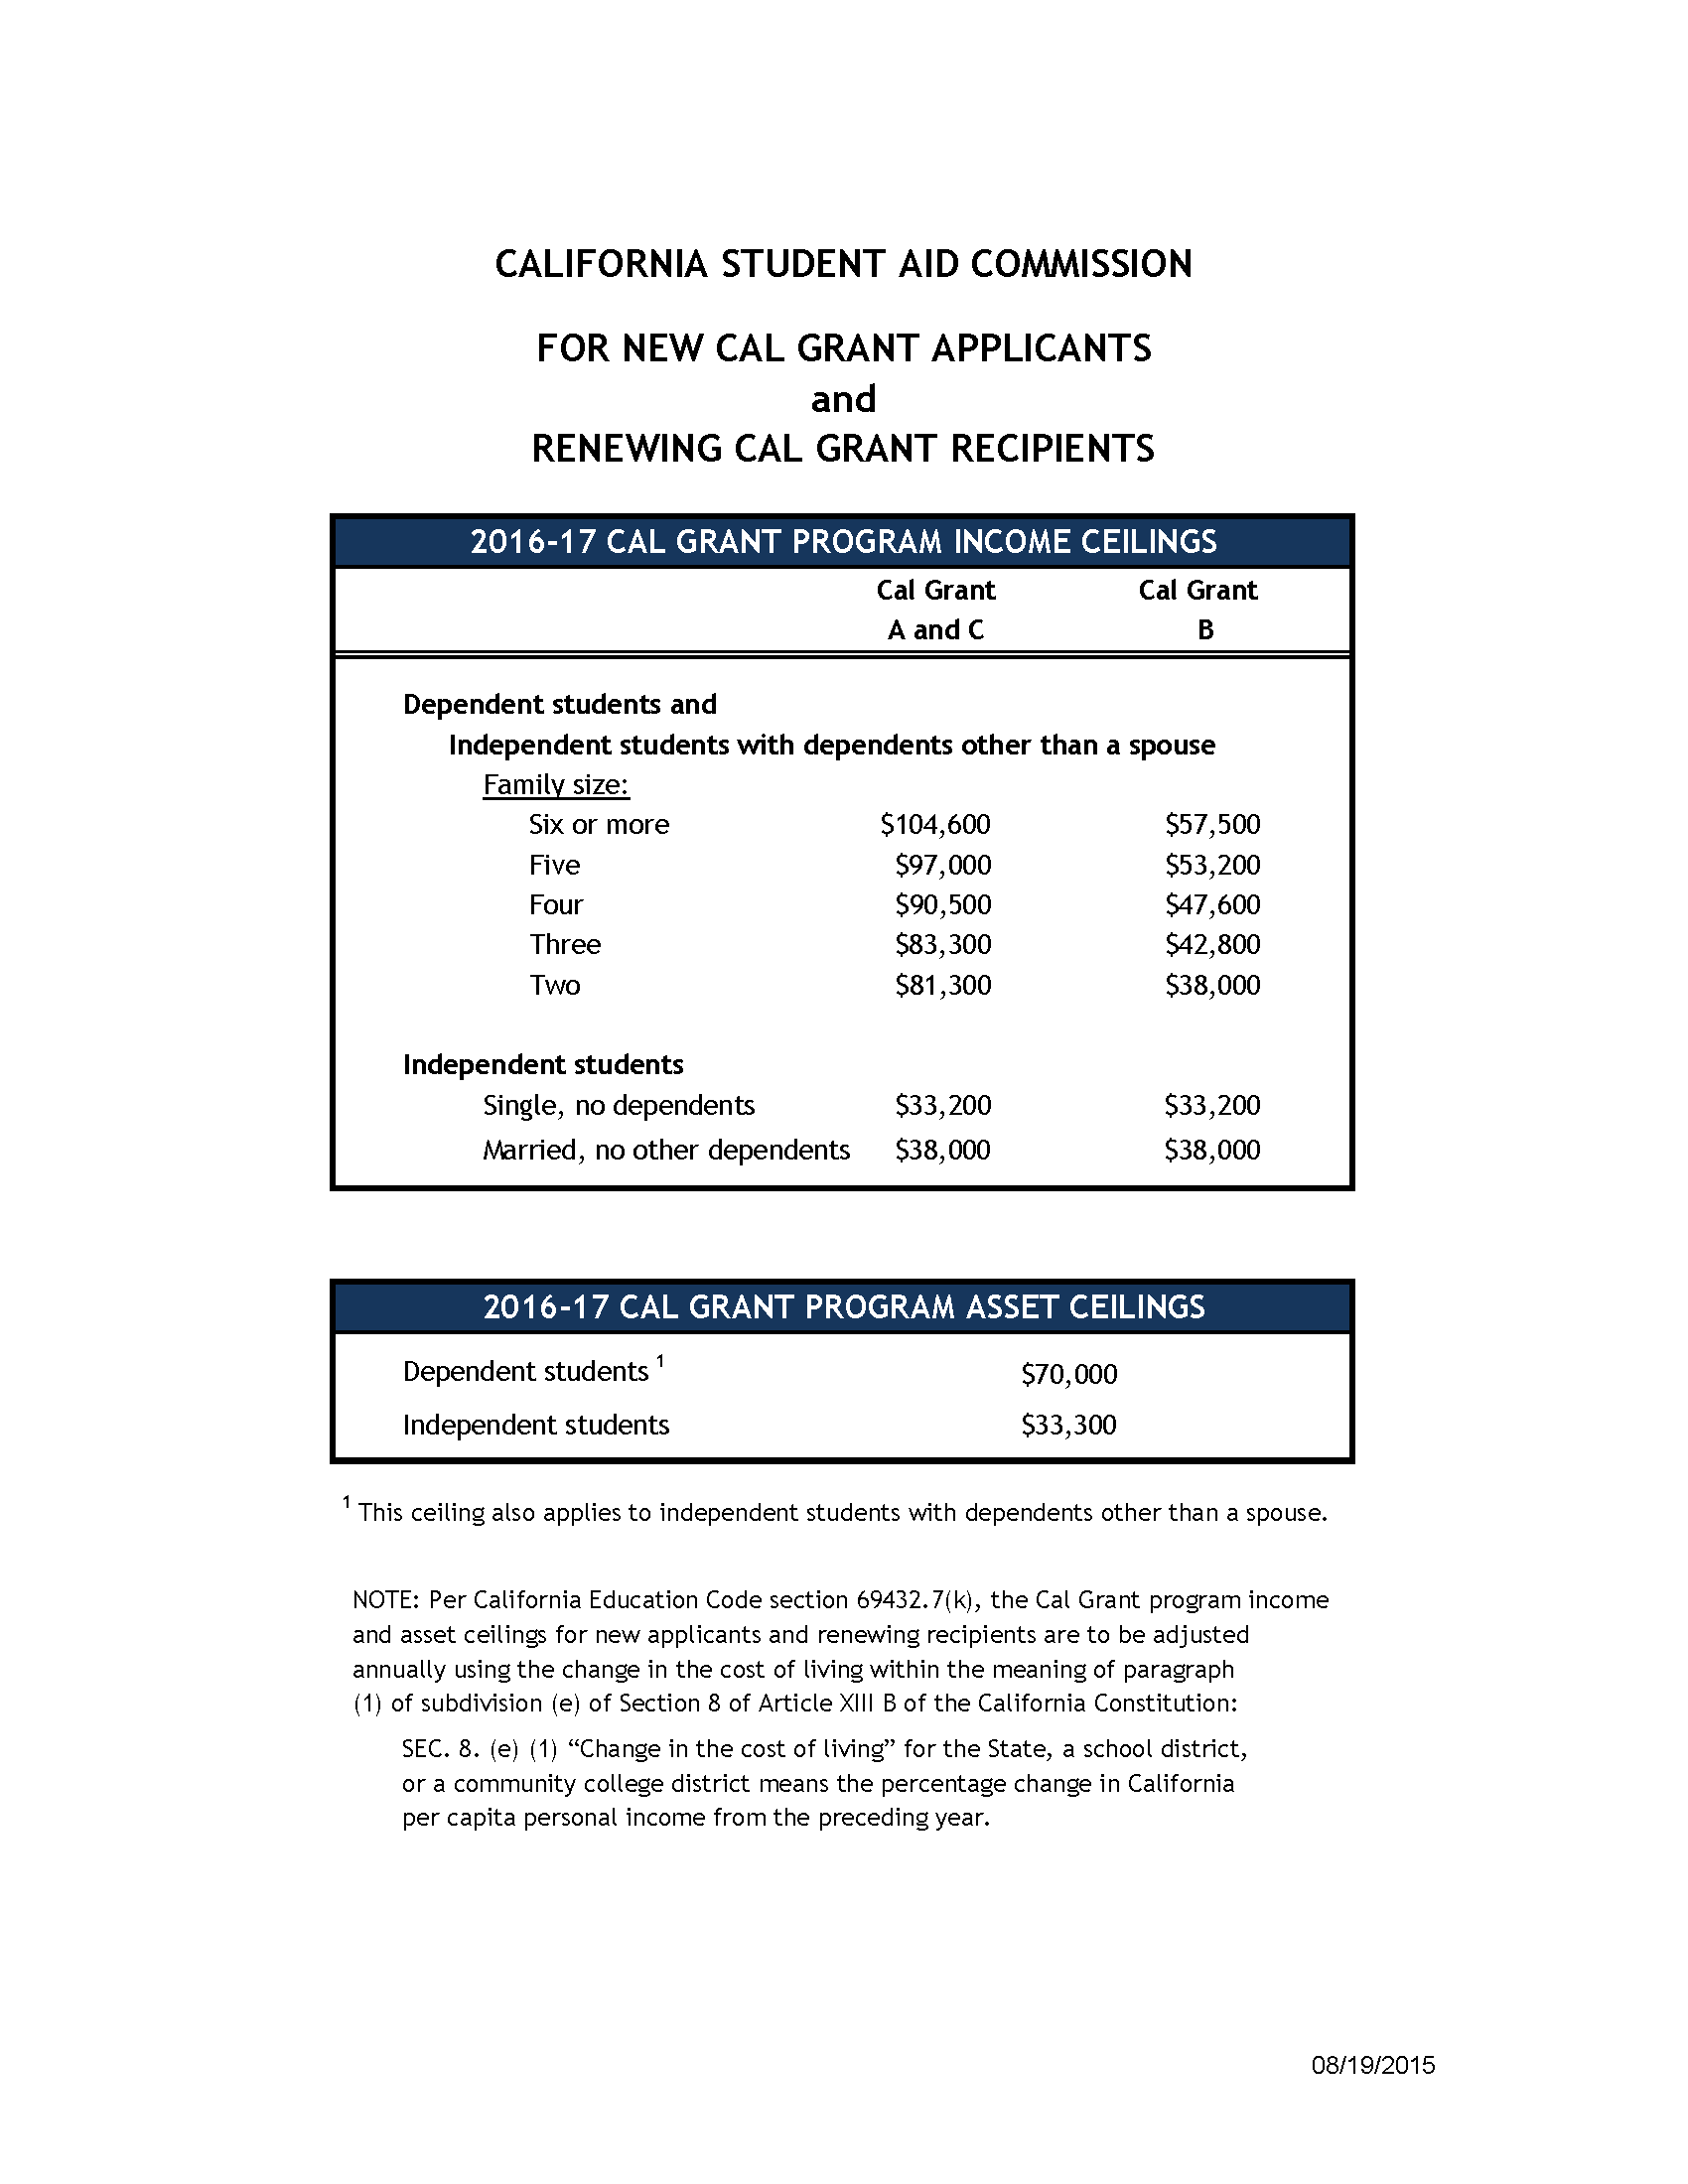 17 Cal Grant Income And Asset Ceilings